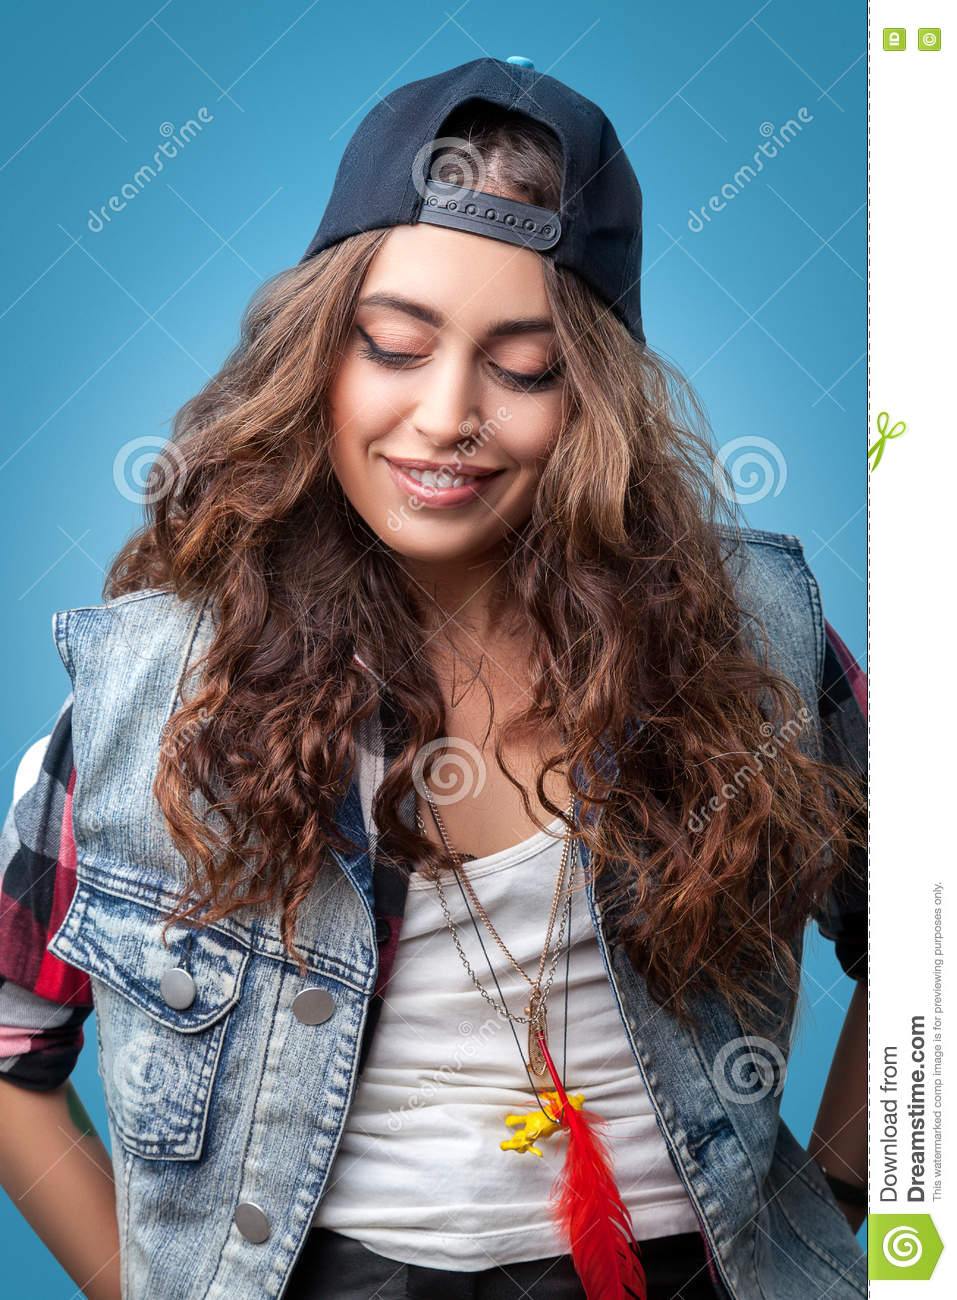 3378a12ef2 Portrait of beautiful trendy stylish hipster girl with long curly hair smiling  wearing red checkered shirt